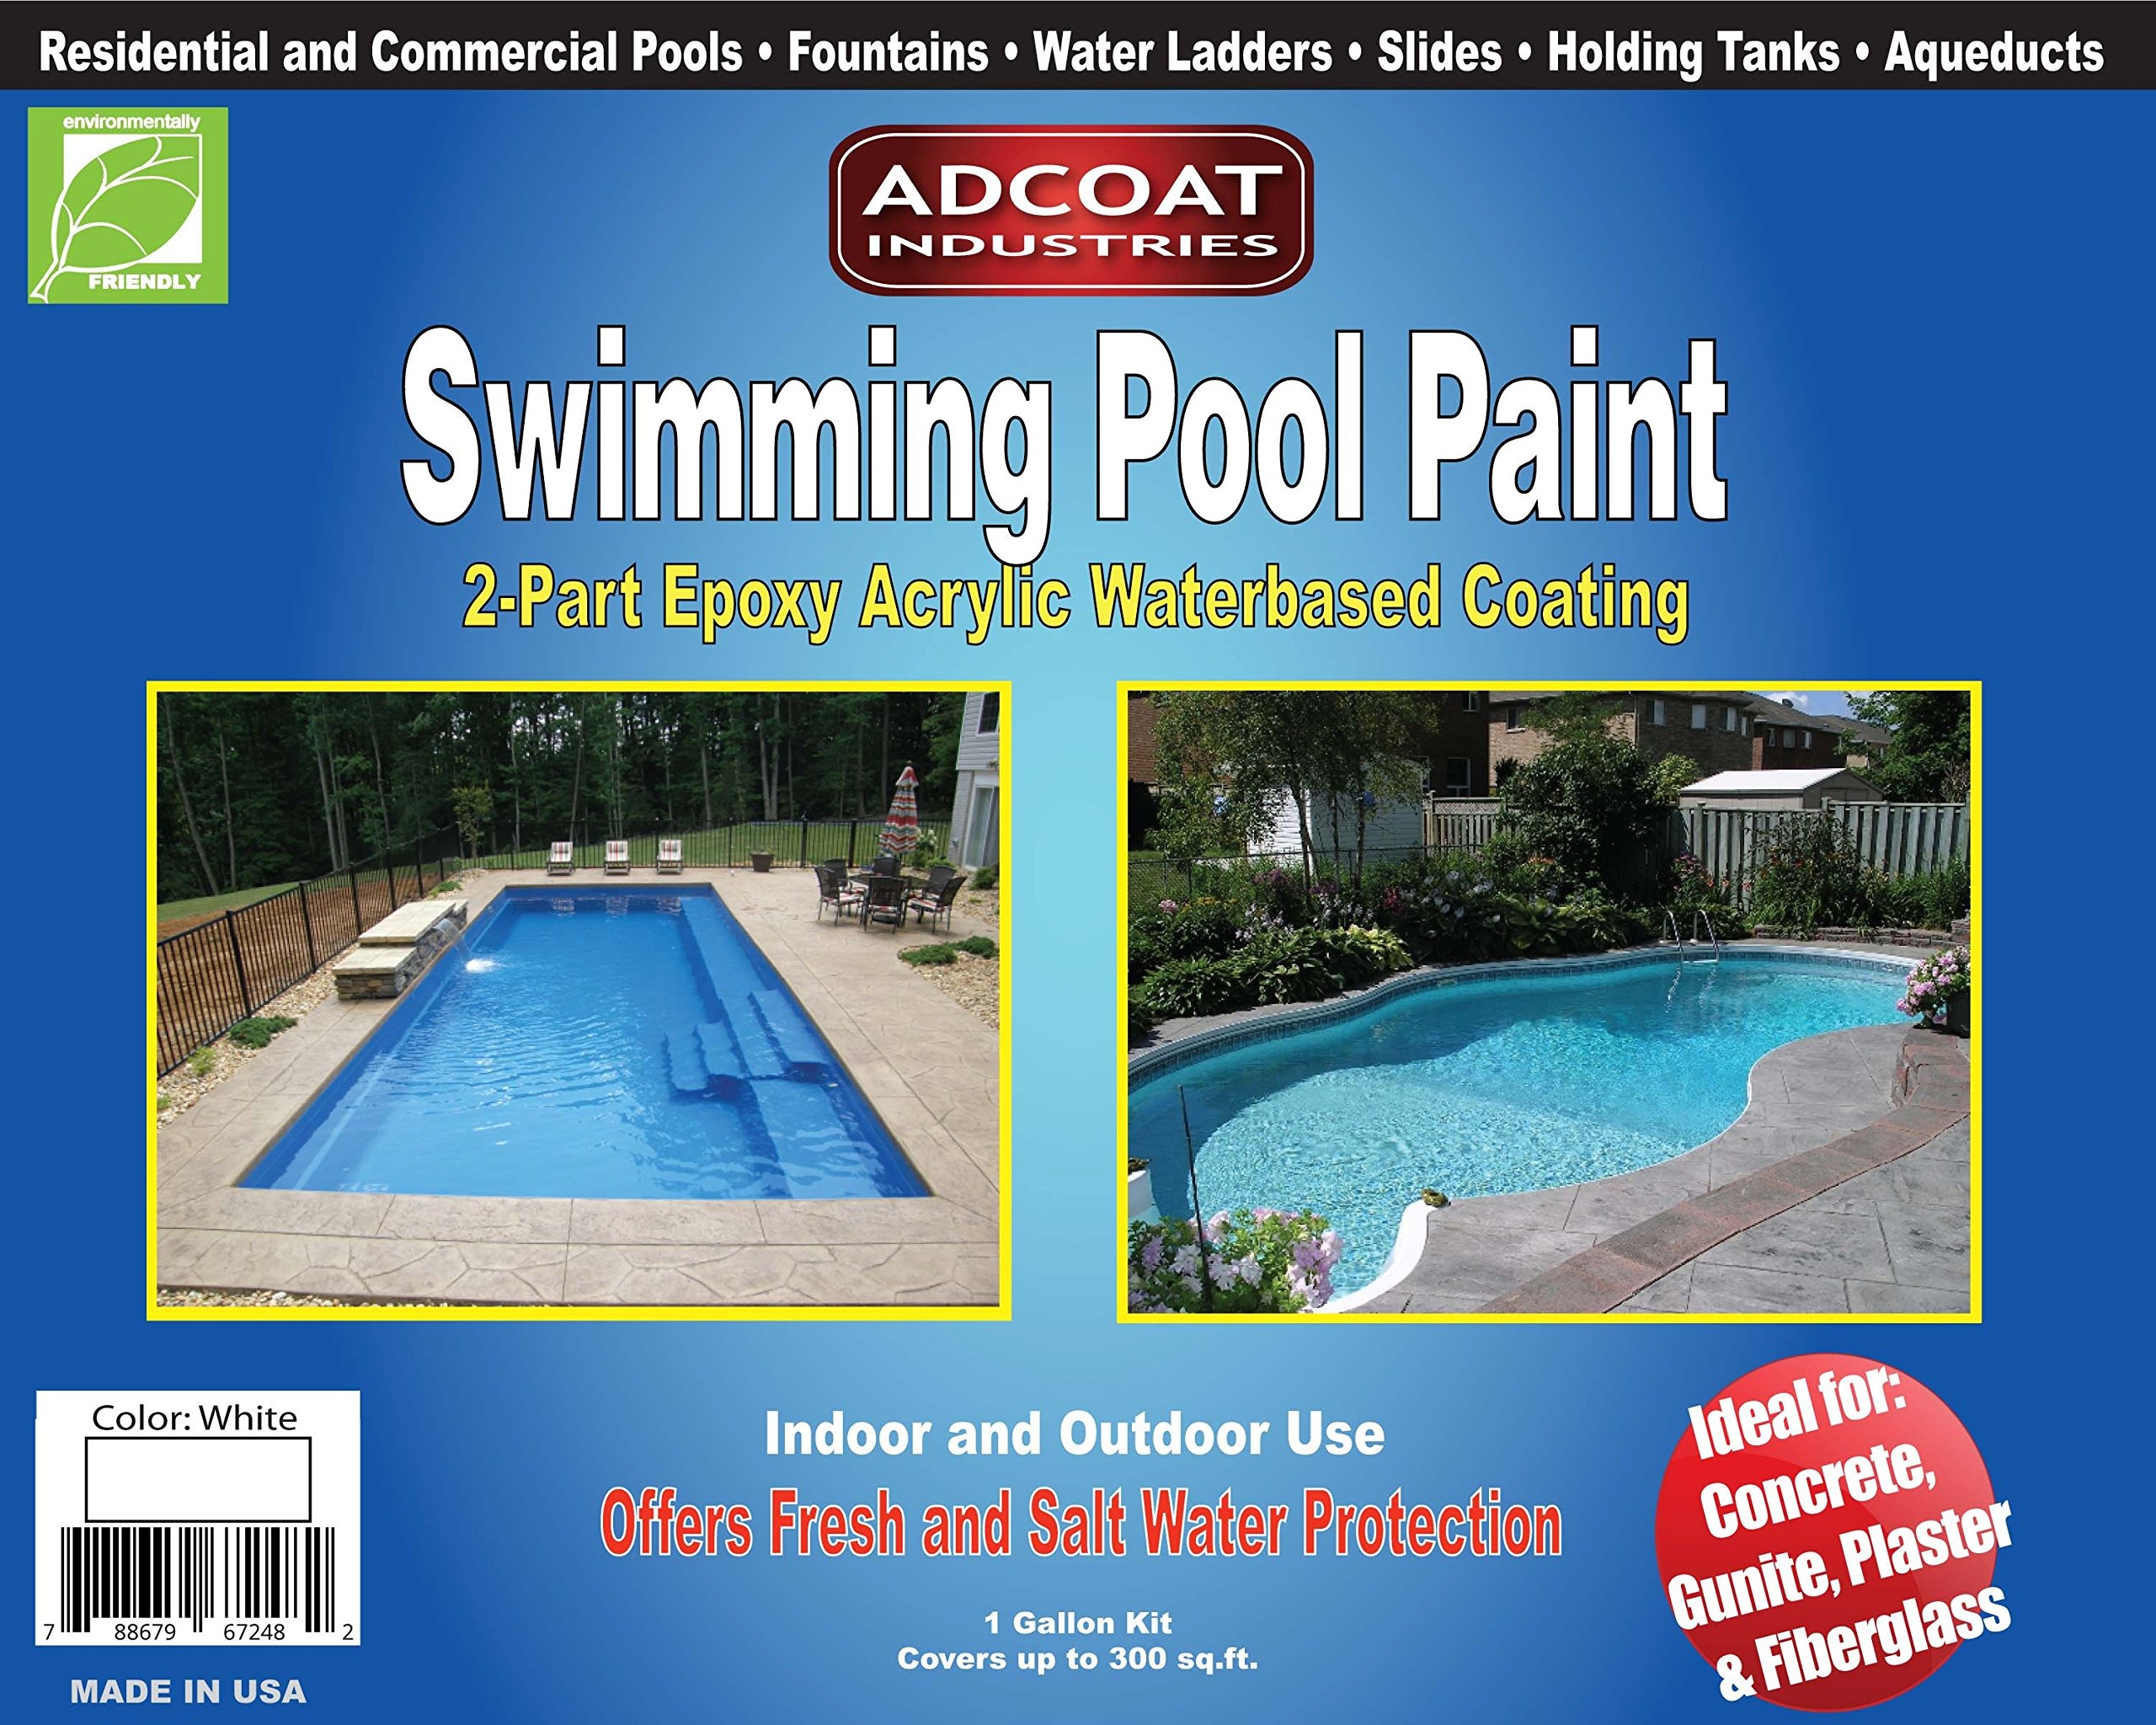 AdCoat Swimming Pool Paint, 2-Part Epoxy Acrylic Waterbased Coating, 1 Gallon Kit - White Color by AdCoat